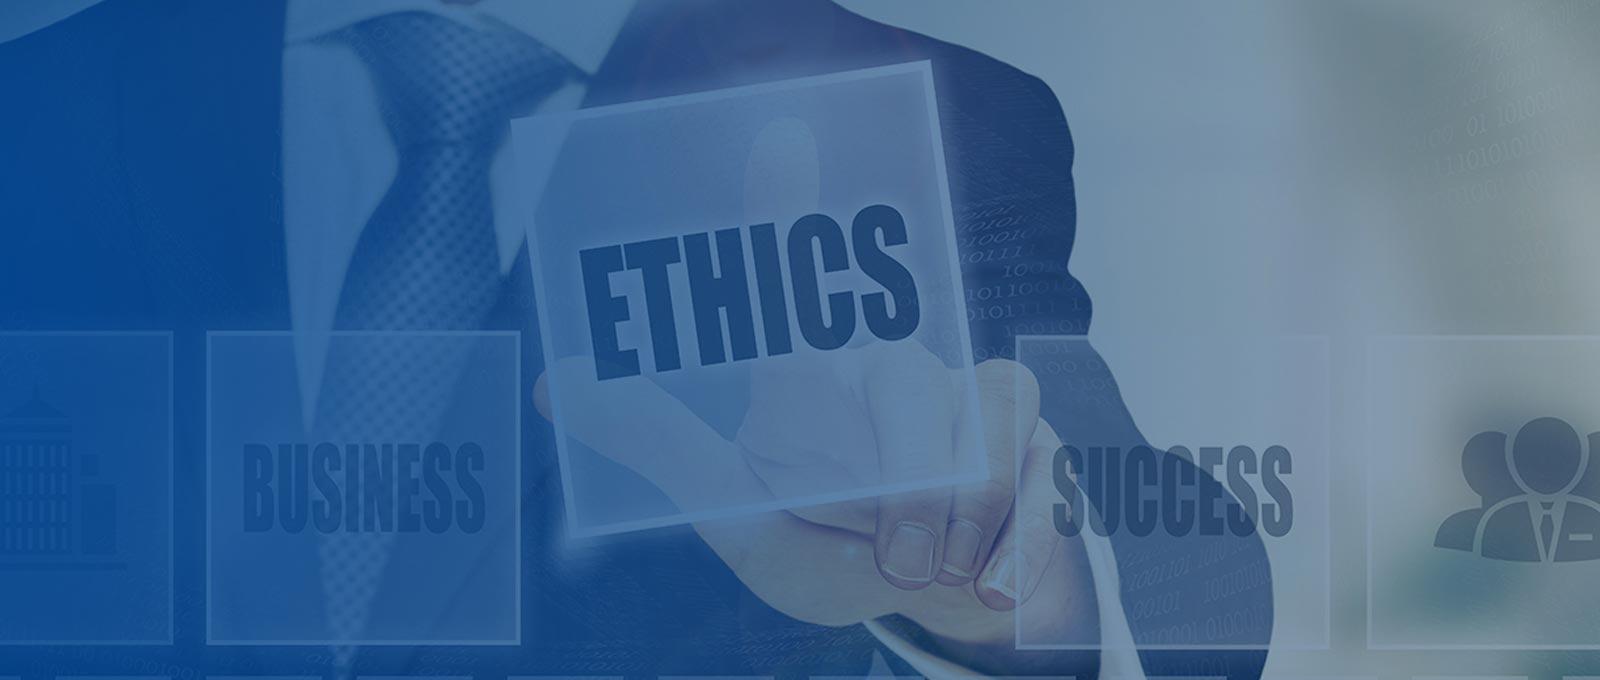 Prysmian Group's Code of Ethics